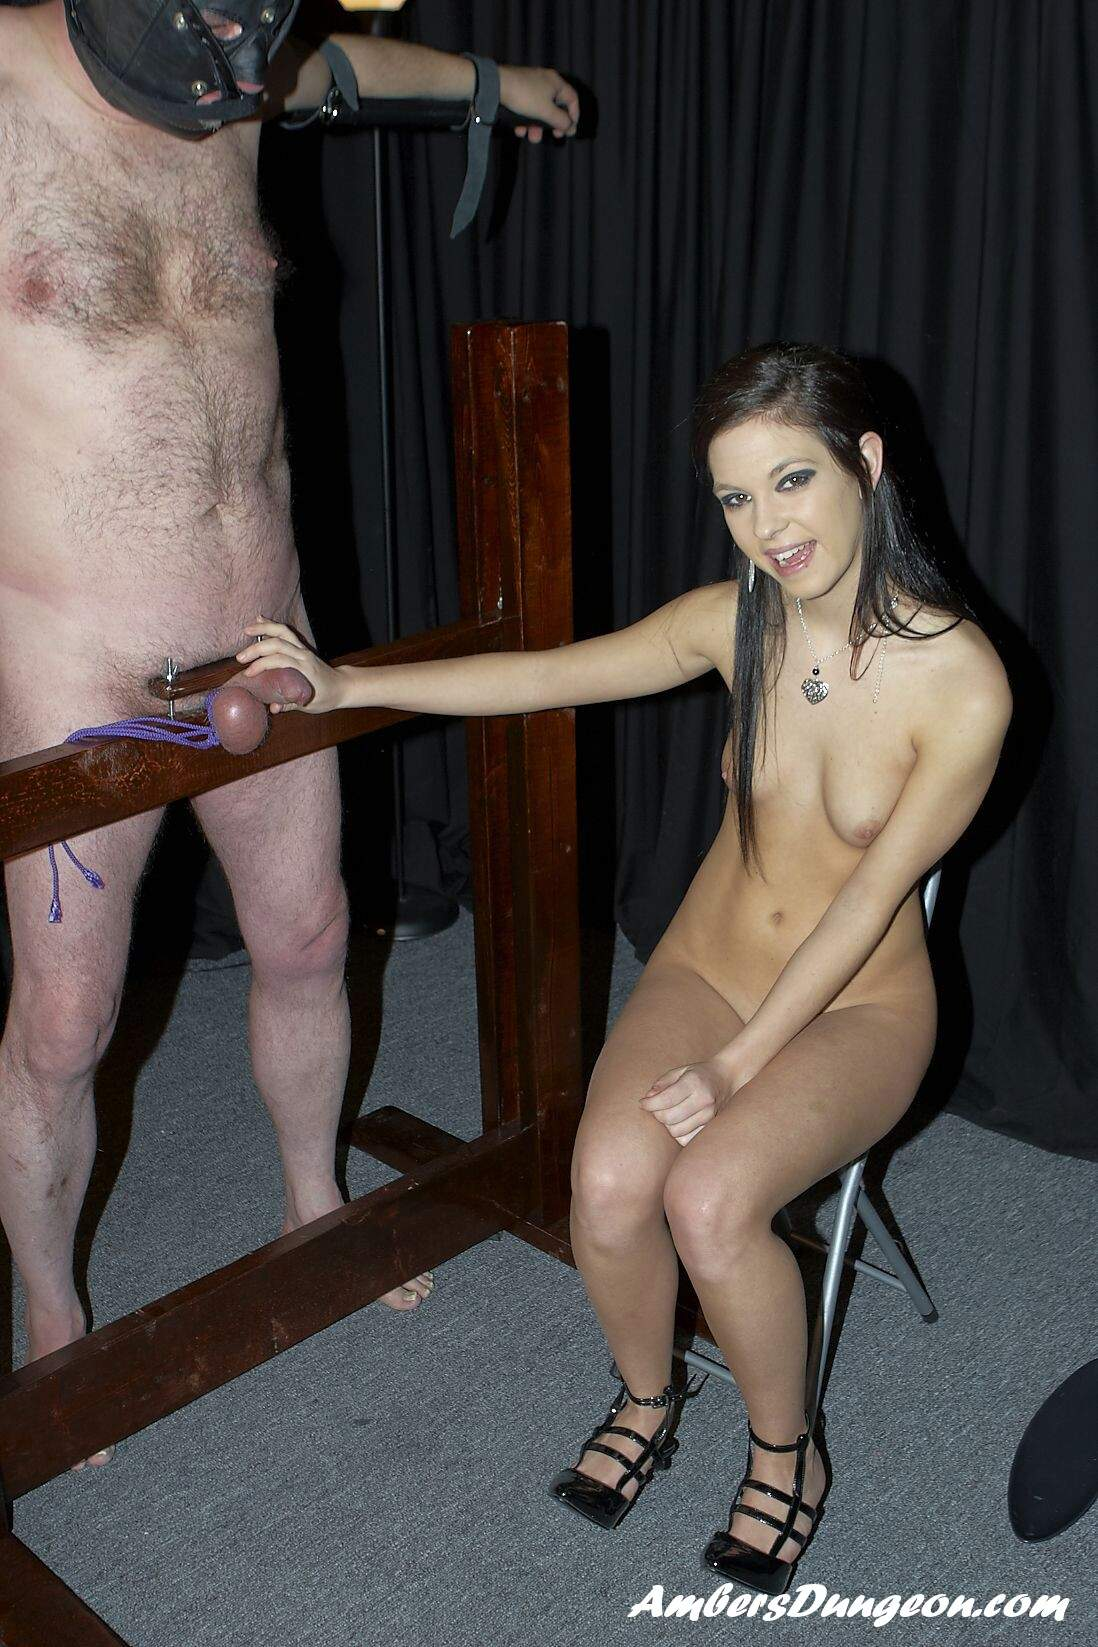 Dom with big cock teaches tiny asian submissive slut to obey 6